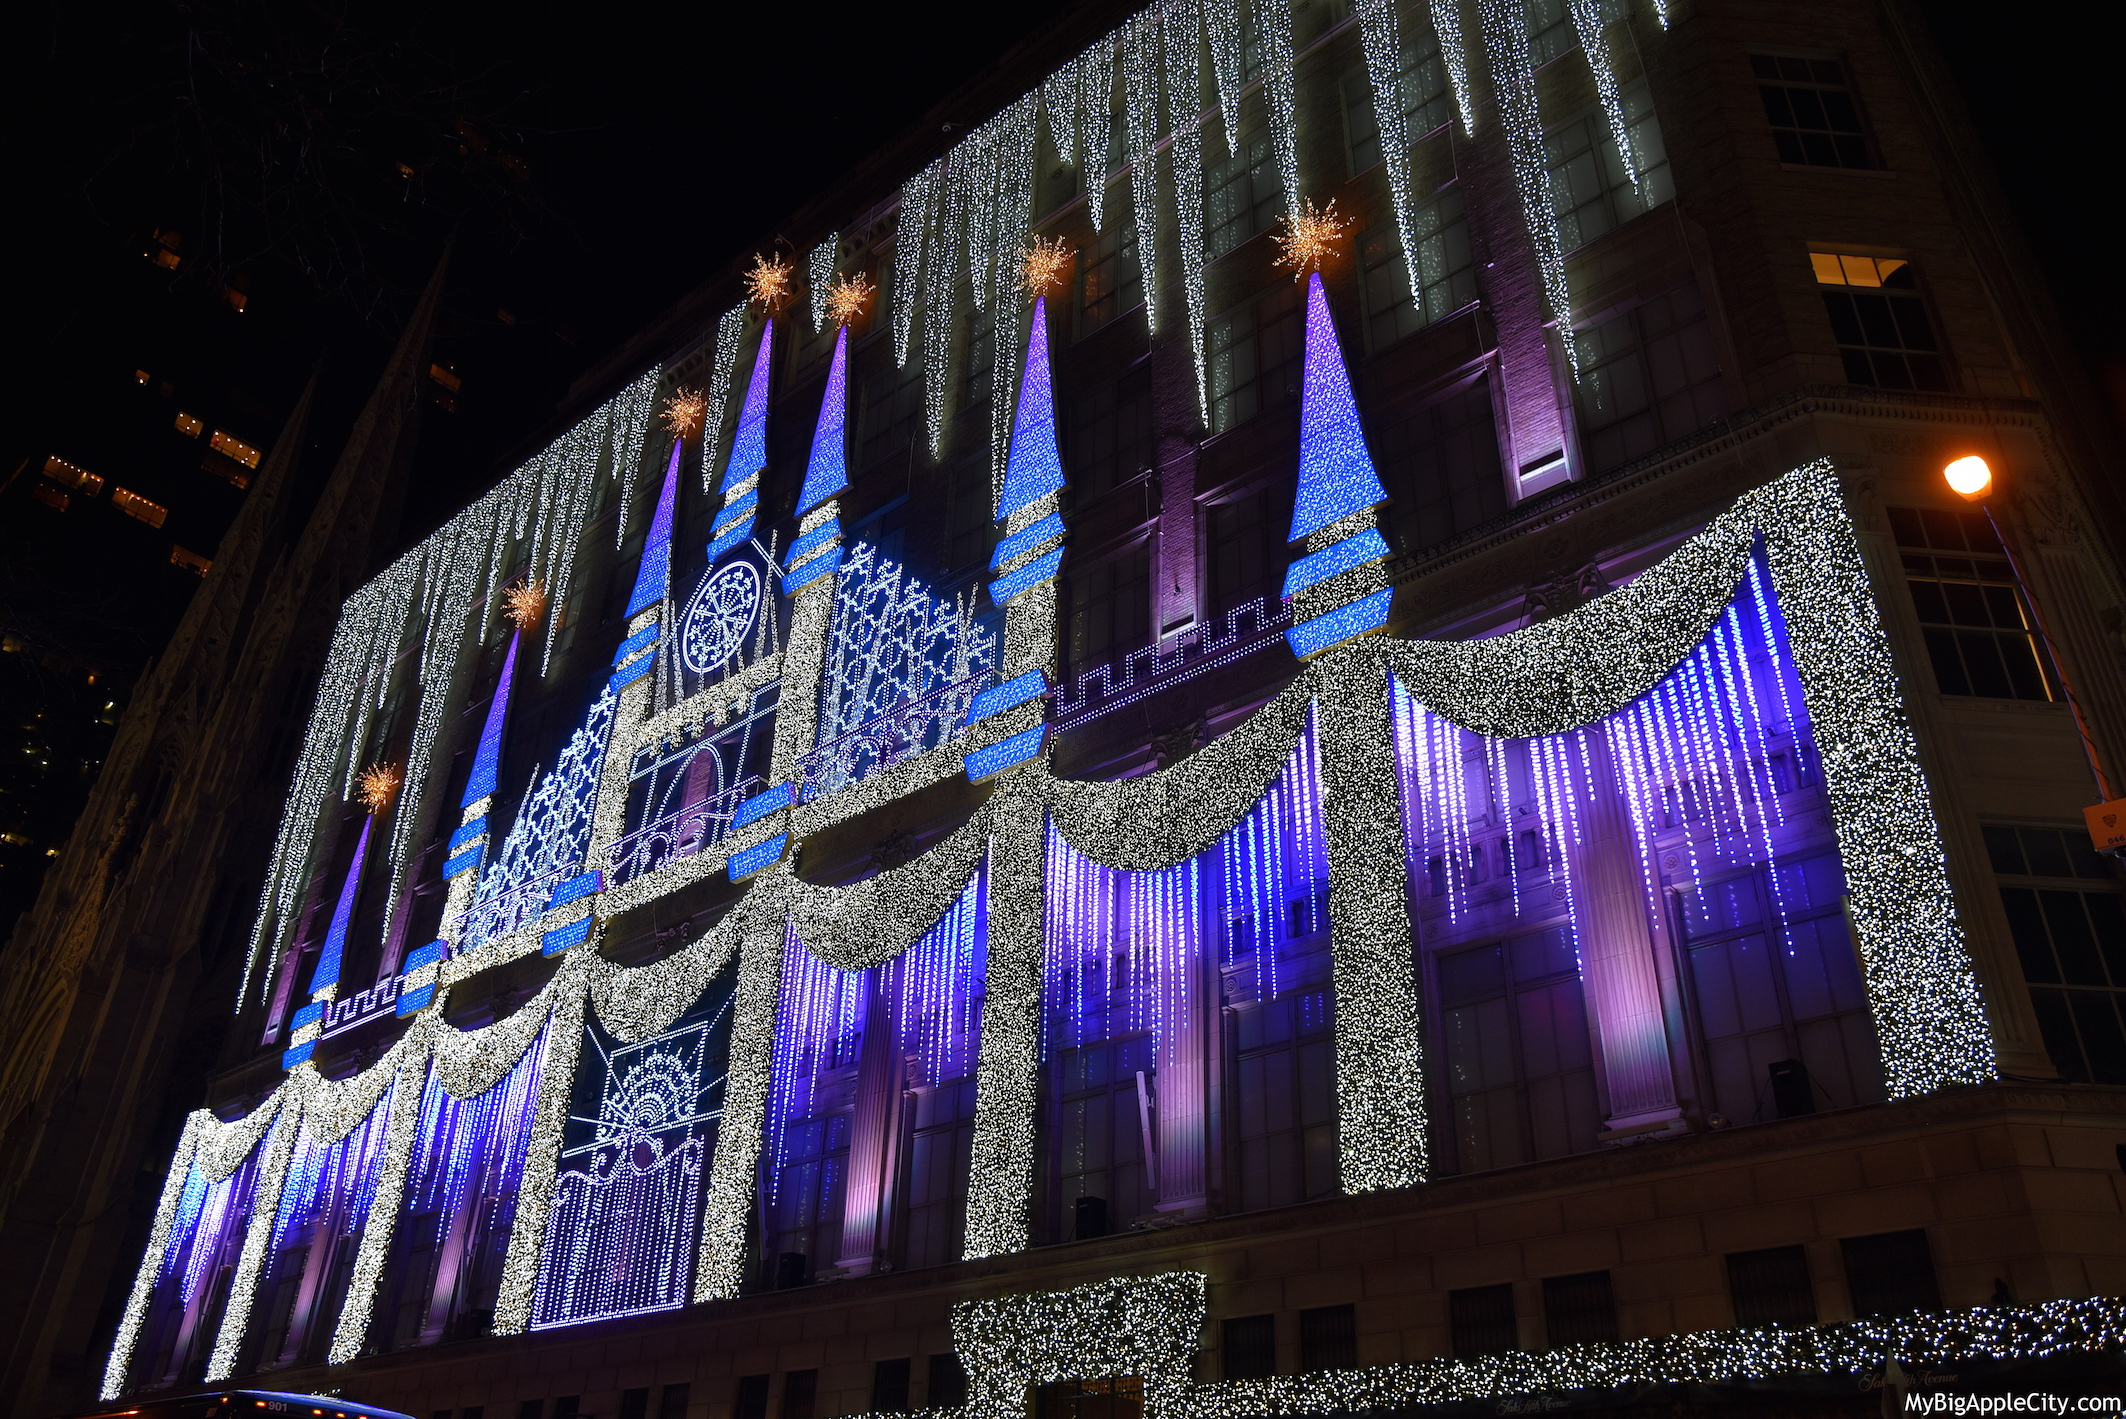 Saks-Noel-Illuminations-New-York-Blog-Voyage-MyBigAppleCity